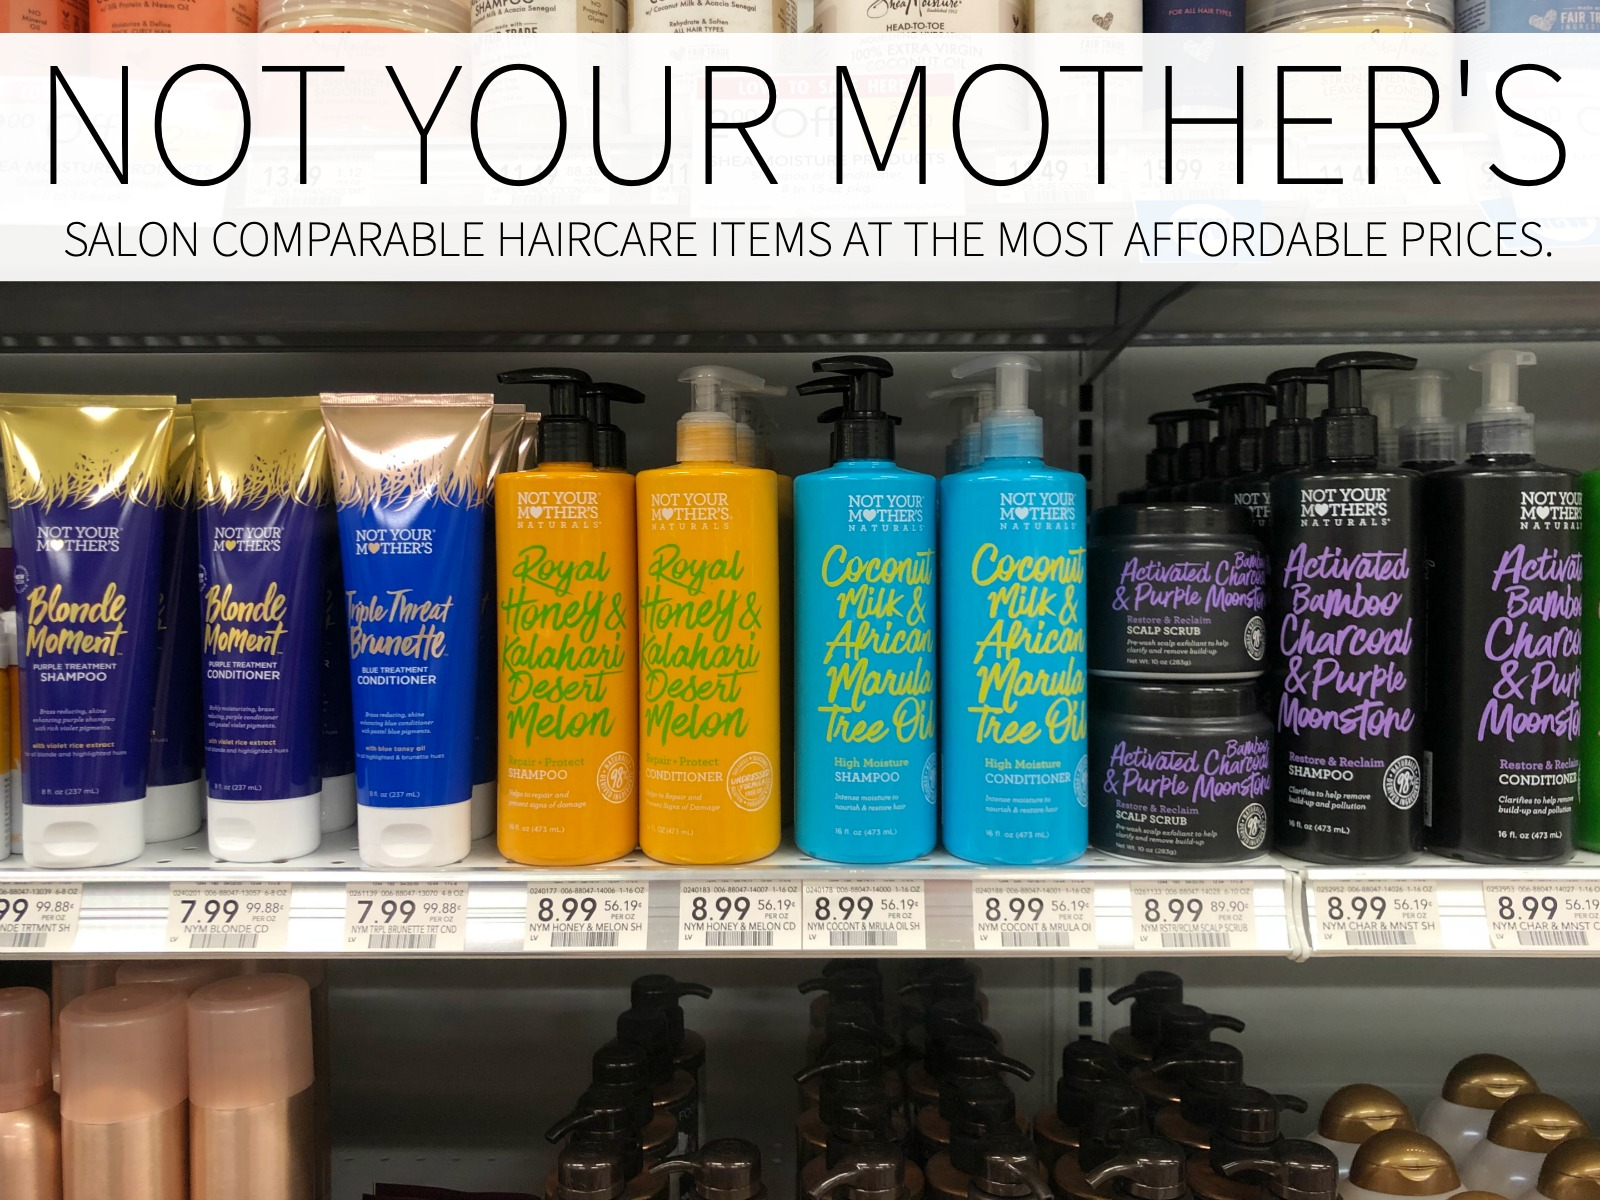 Not Your Mother's Products Are Buy One, Get One FREE At Publix! on I Heart Publix 4